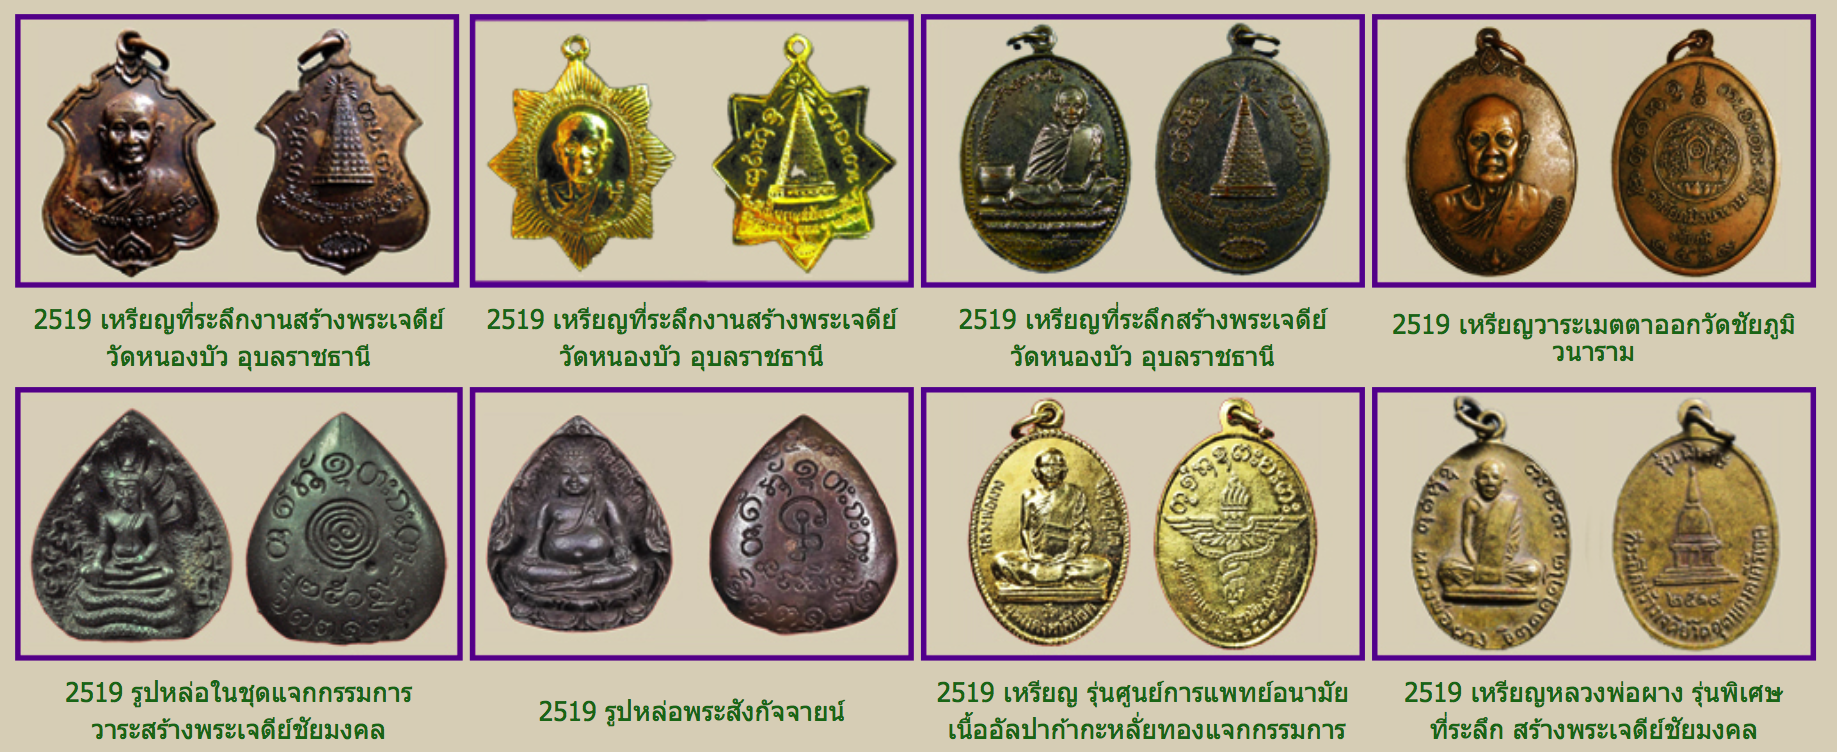 Some of the 2519 BE amulet editions of Luang Por Phang